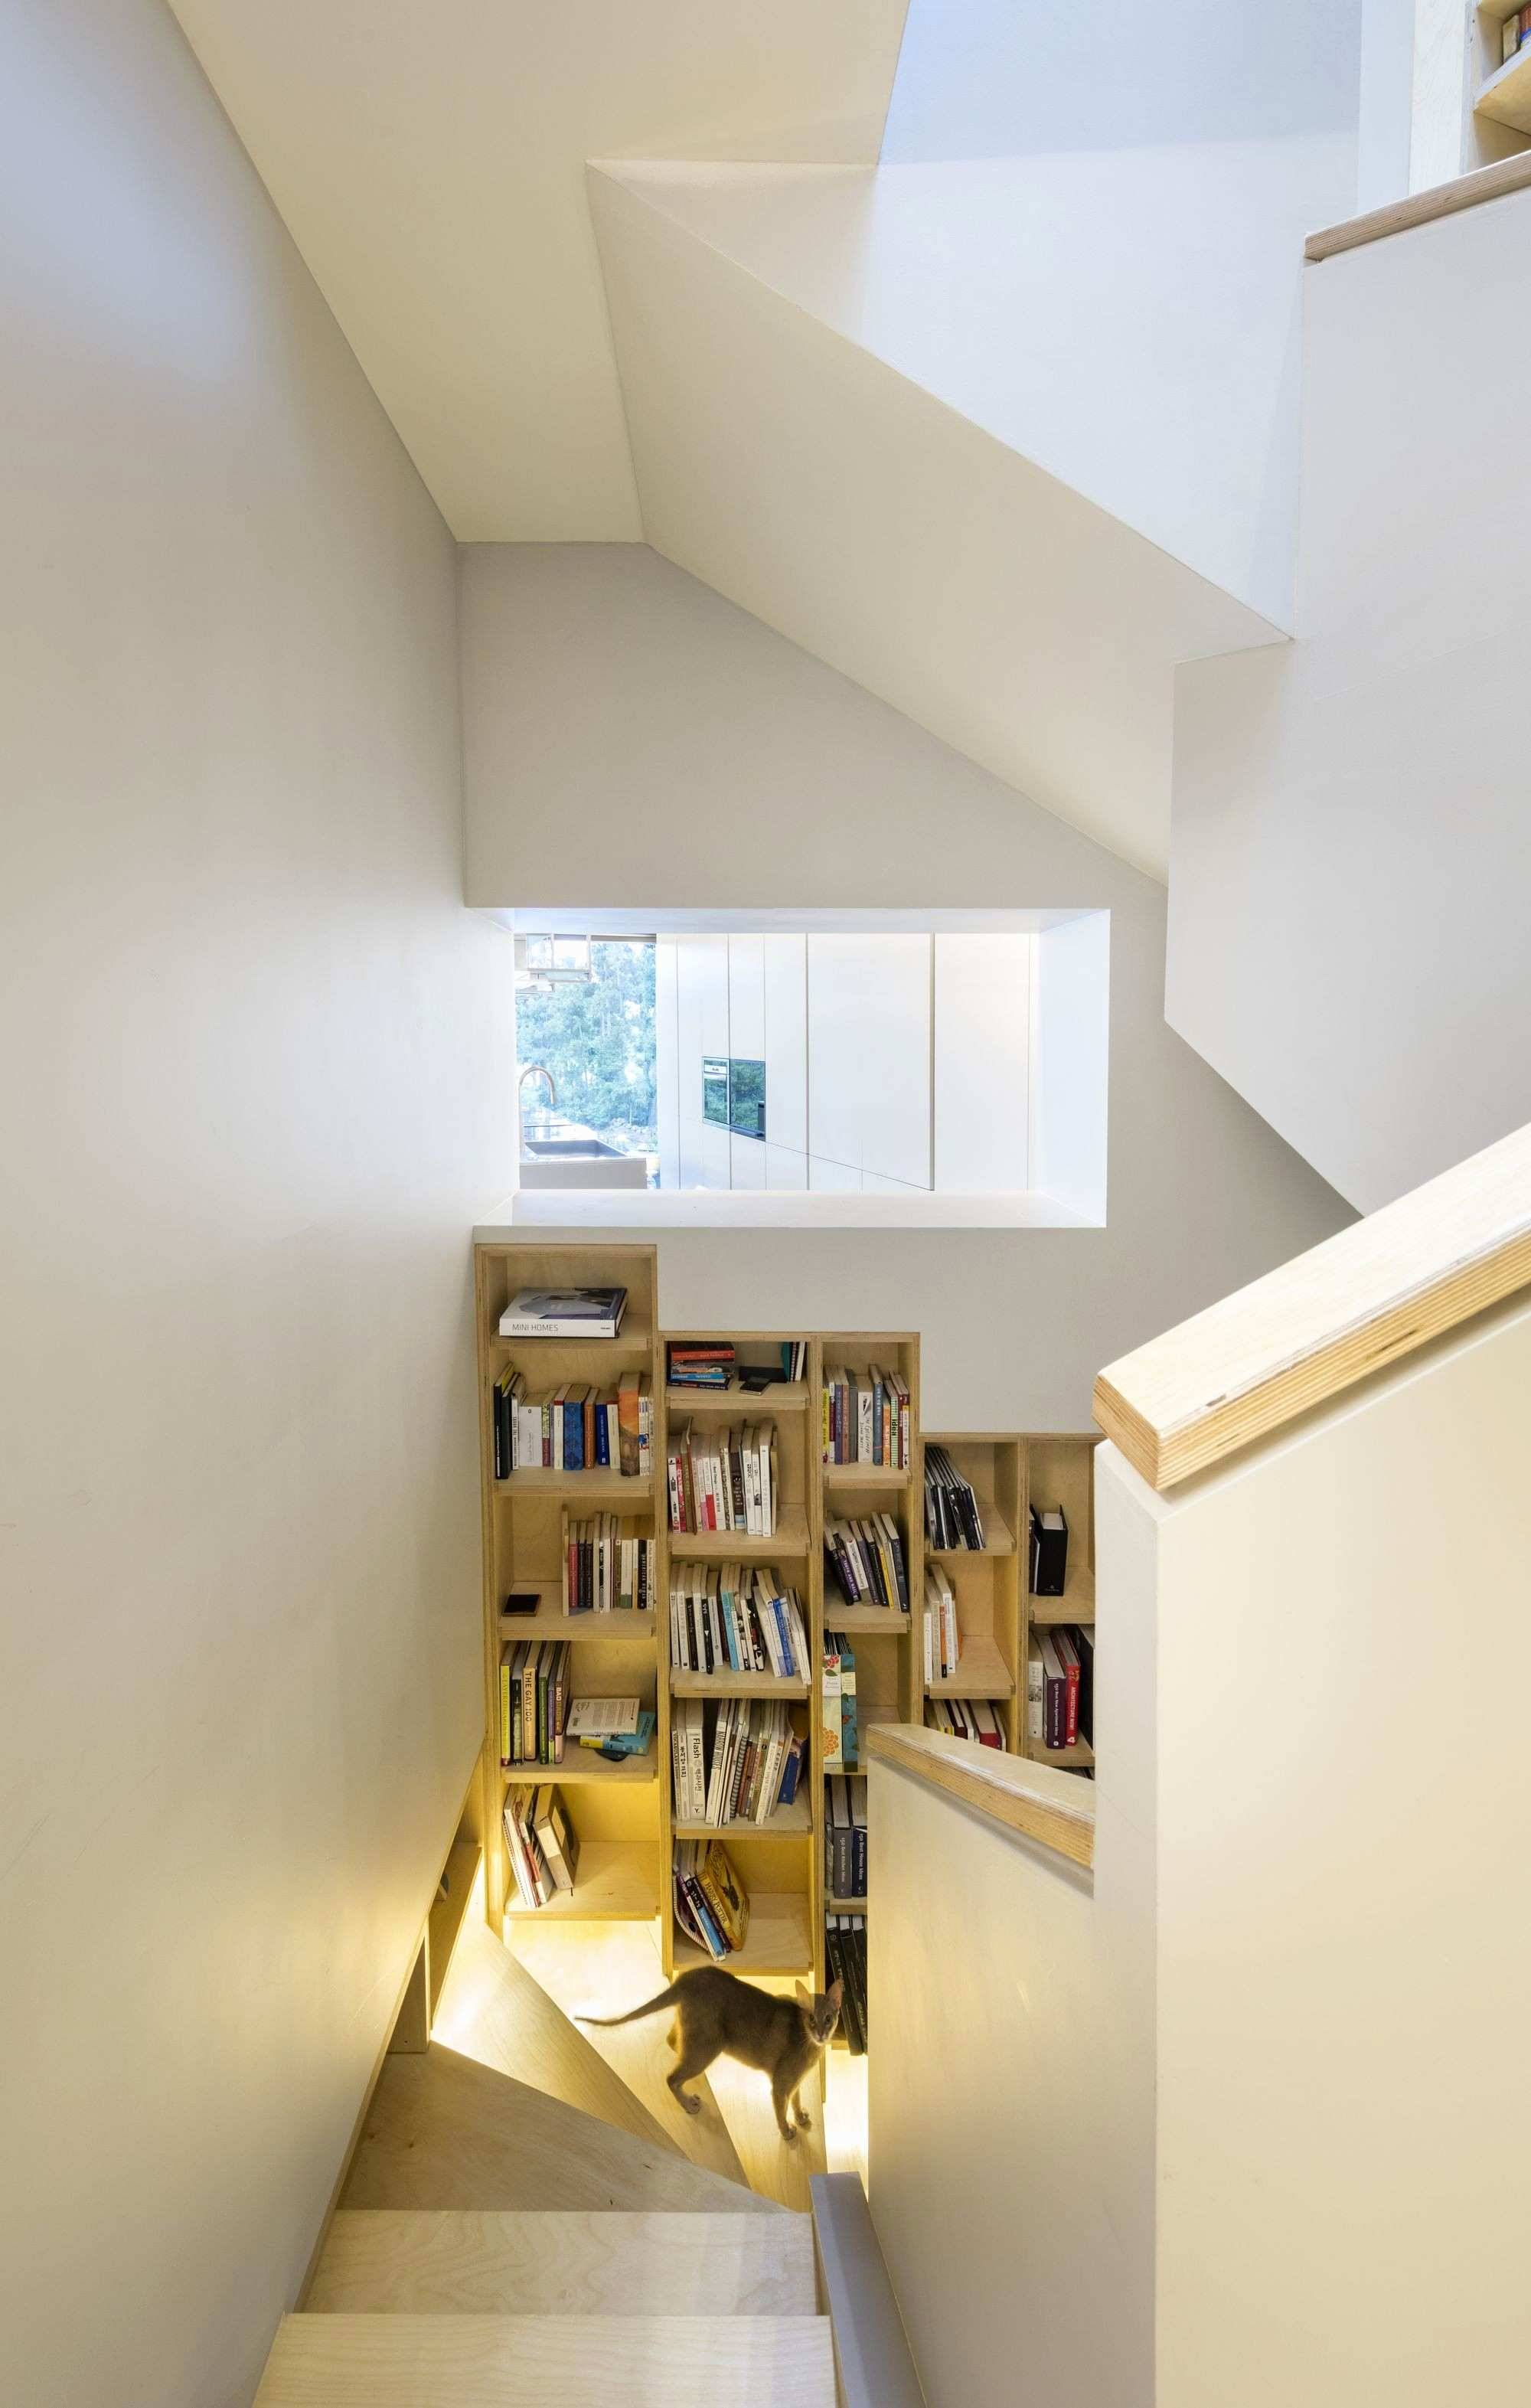 staircase design ideas elegant photos korean house plan korean house plan hous design 0d house plan ideas of staircase design ideas